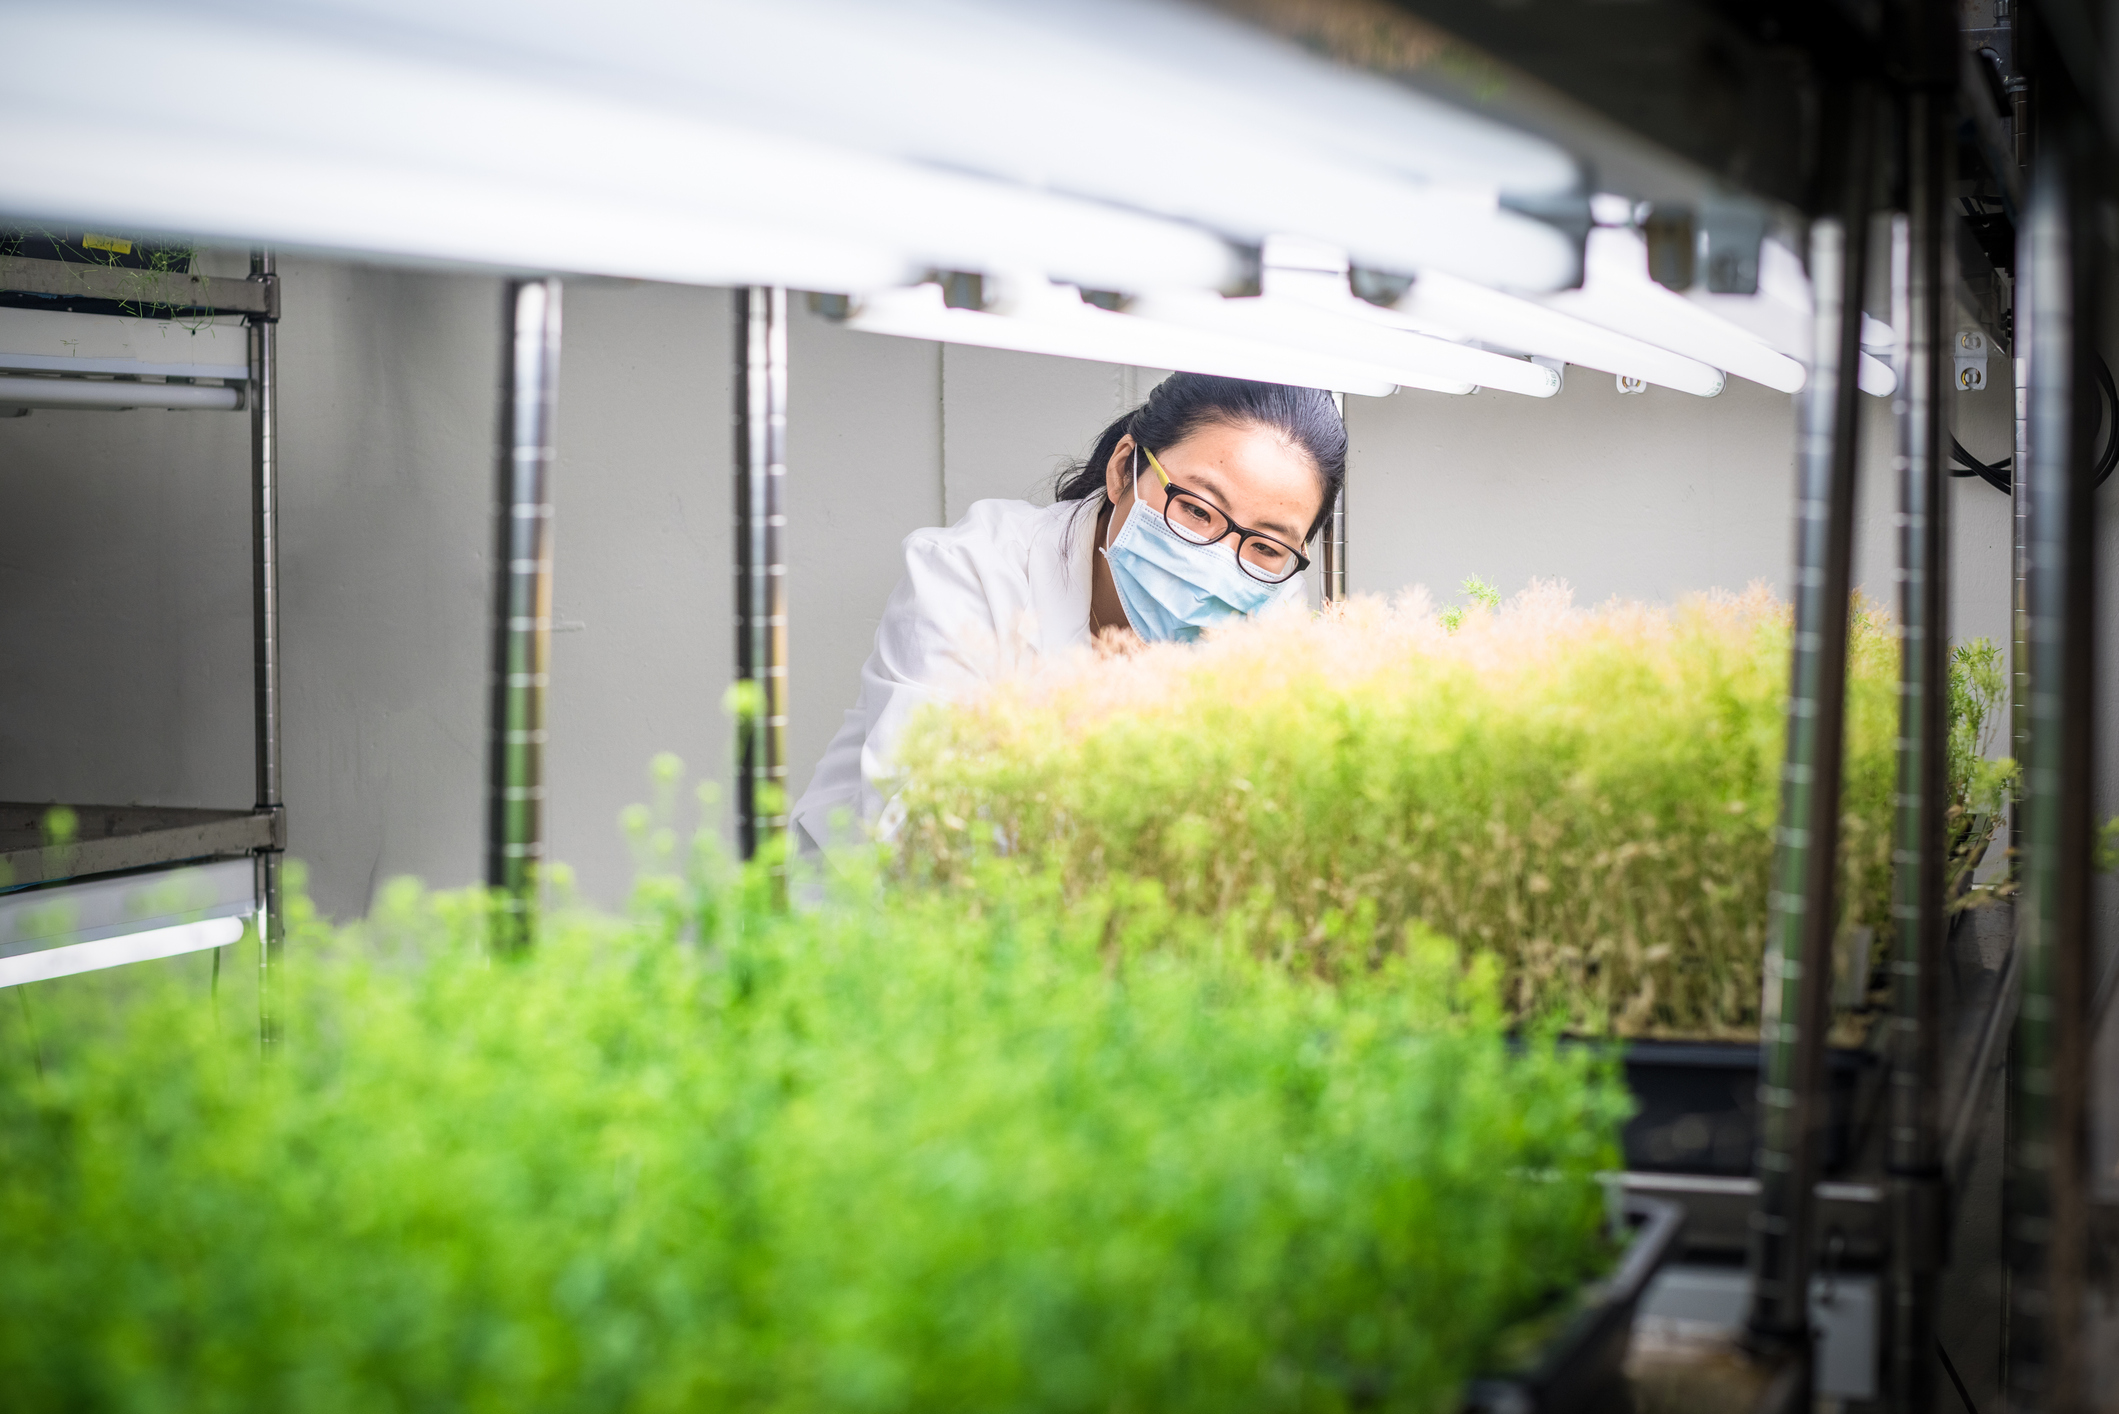 Harnessing the potential of state-of-the-art genomic technologies for accelerating the rate of genetic gain in wheat